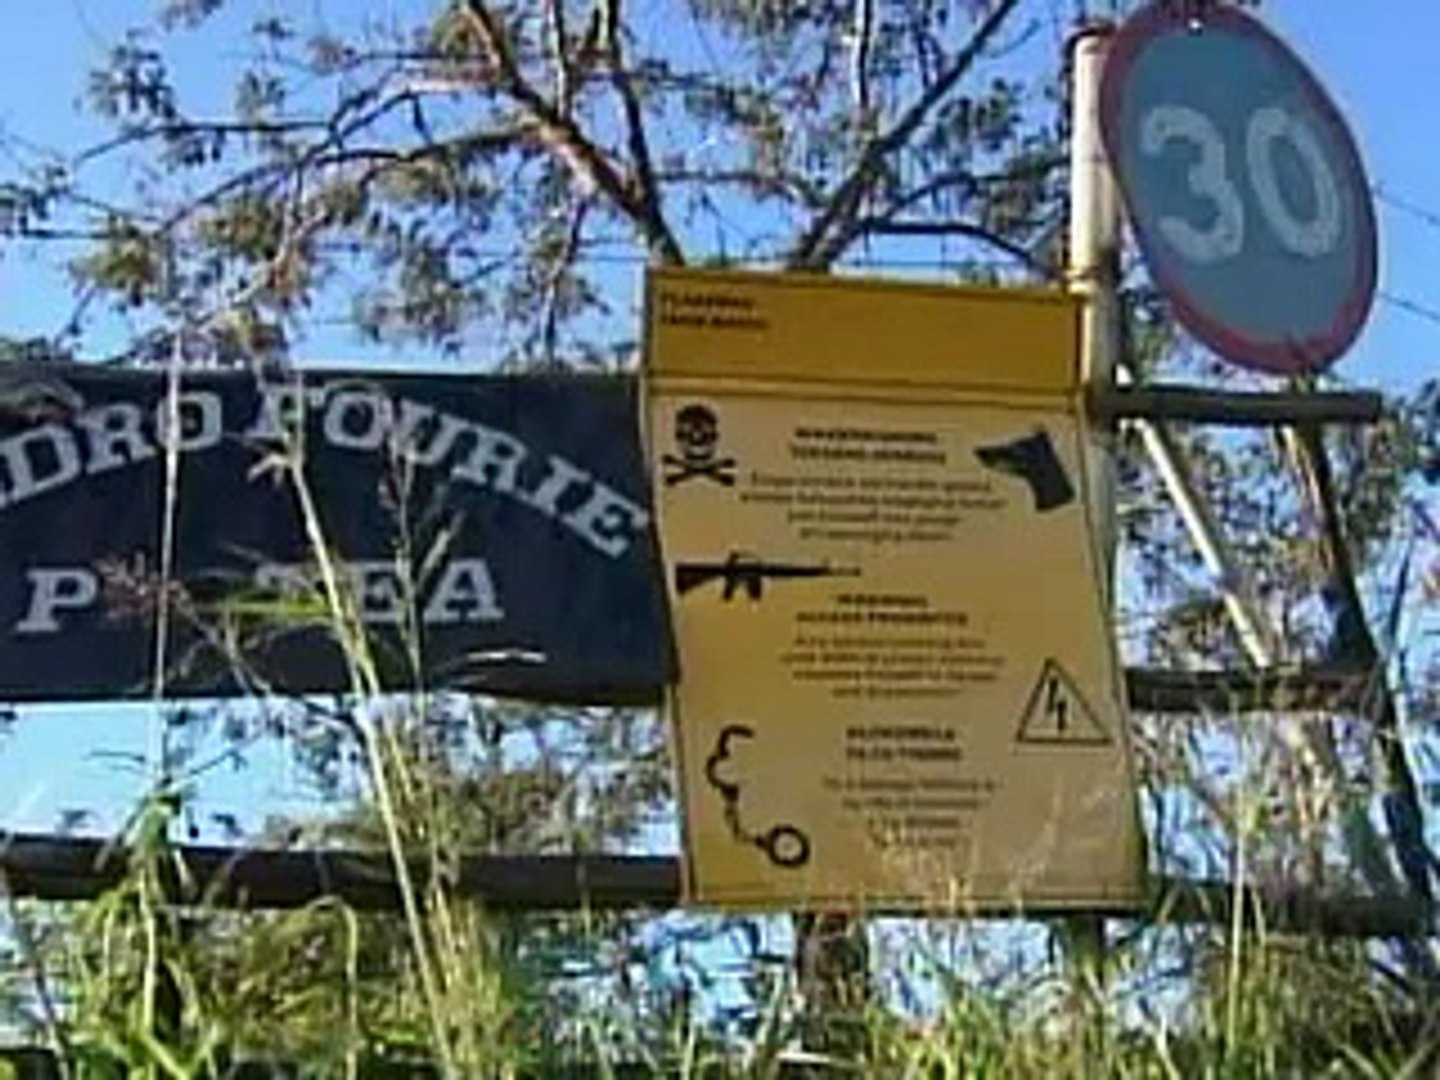 south african farm attacks in the news